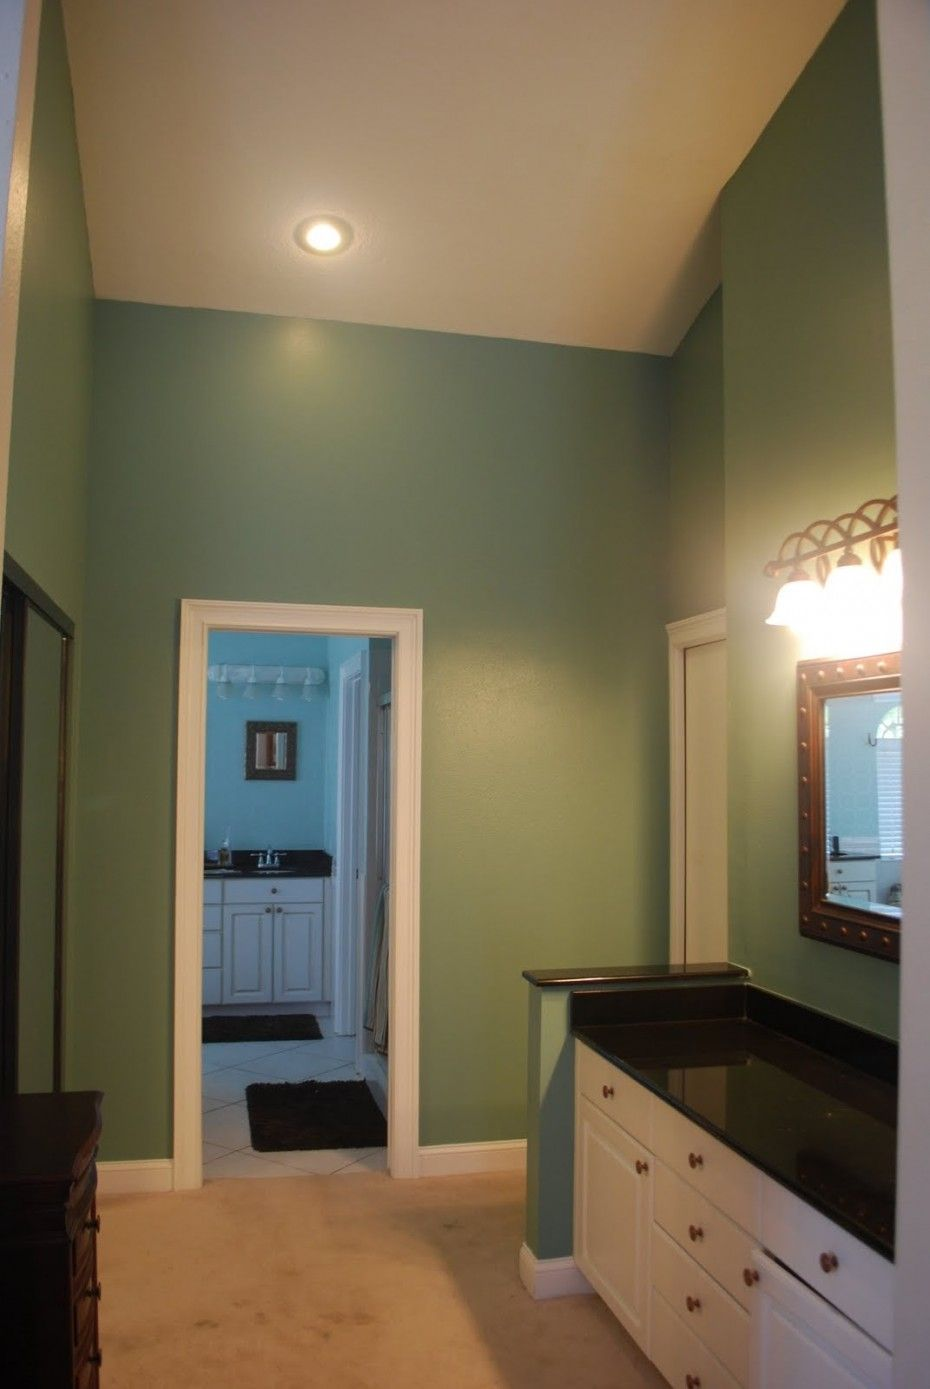 Bathroom paint colors ideas warm green bathroom painting for Bathroom ideas color schemes